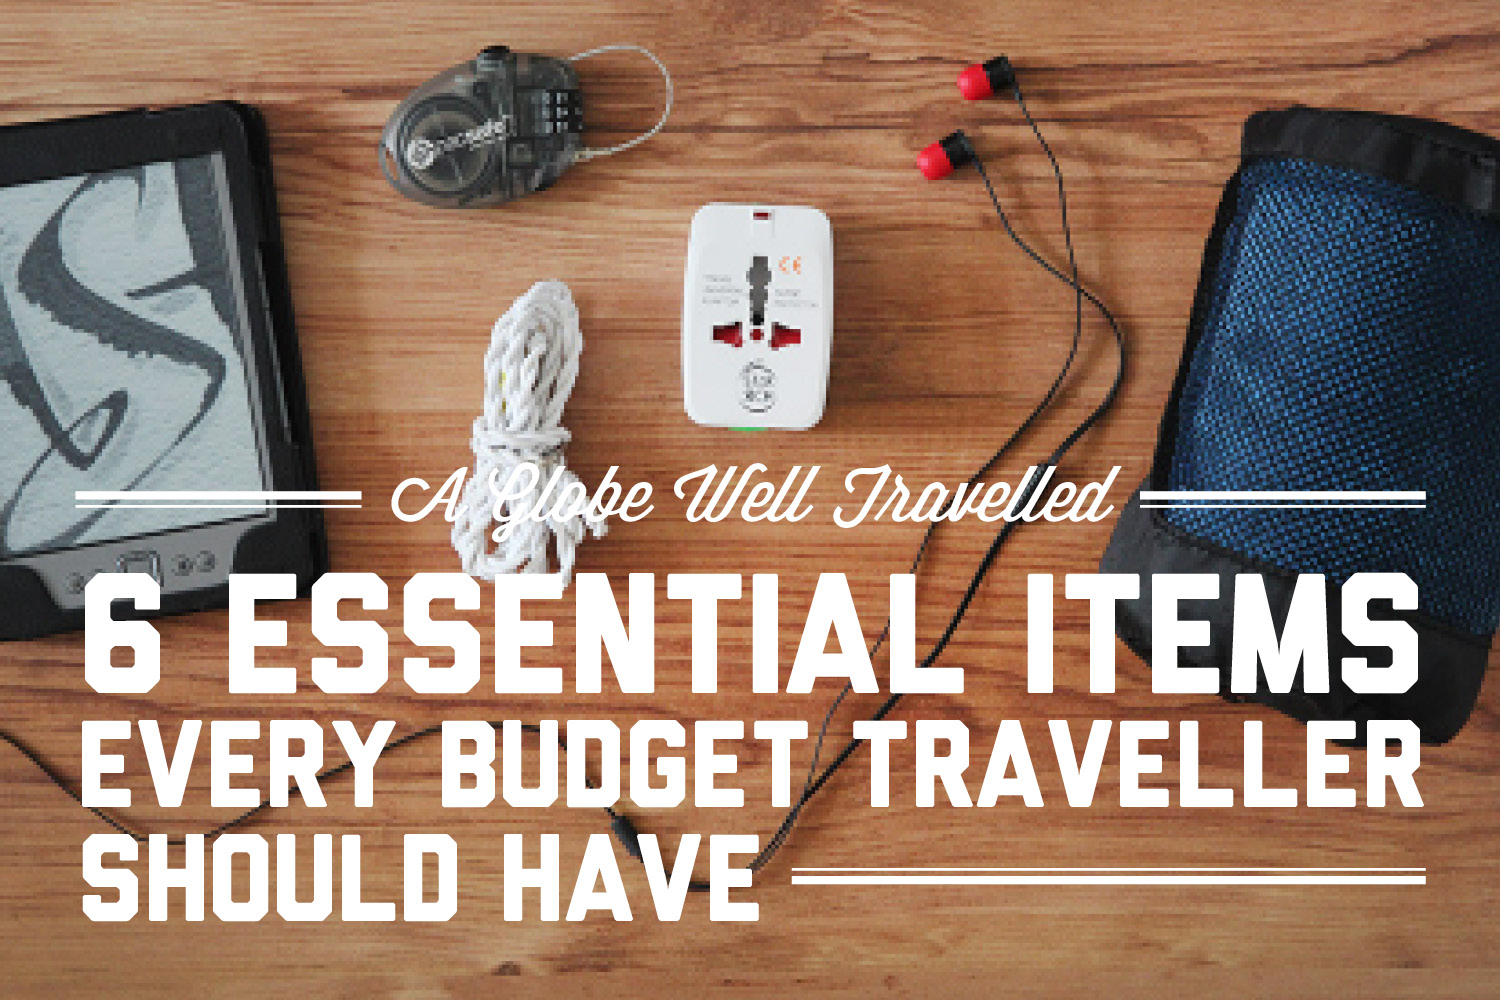 6 essential items every budget traveller should have